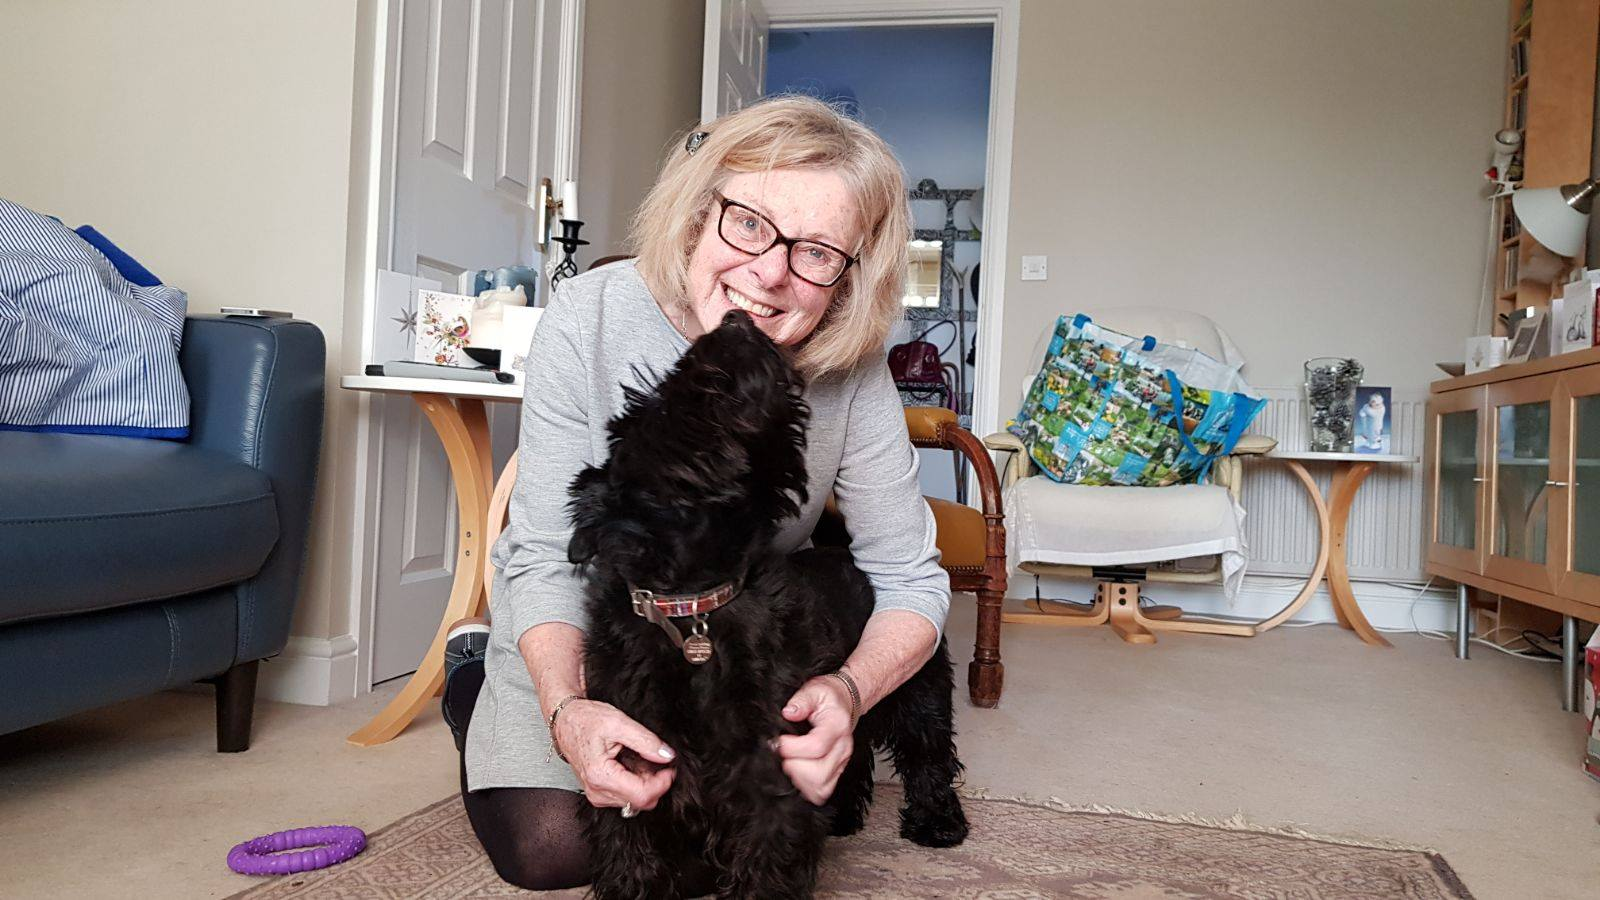 At Barking Mad our dog sitting hosts care for dogs in home settings